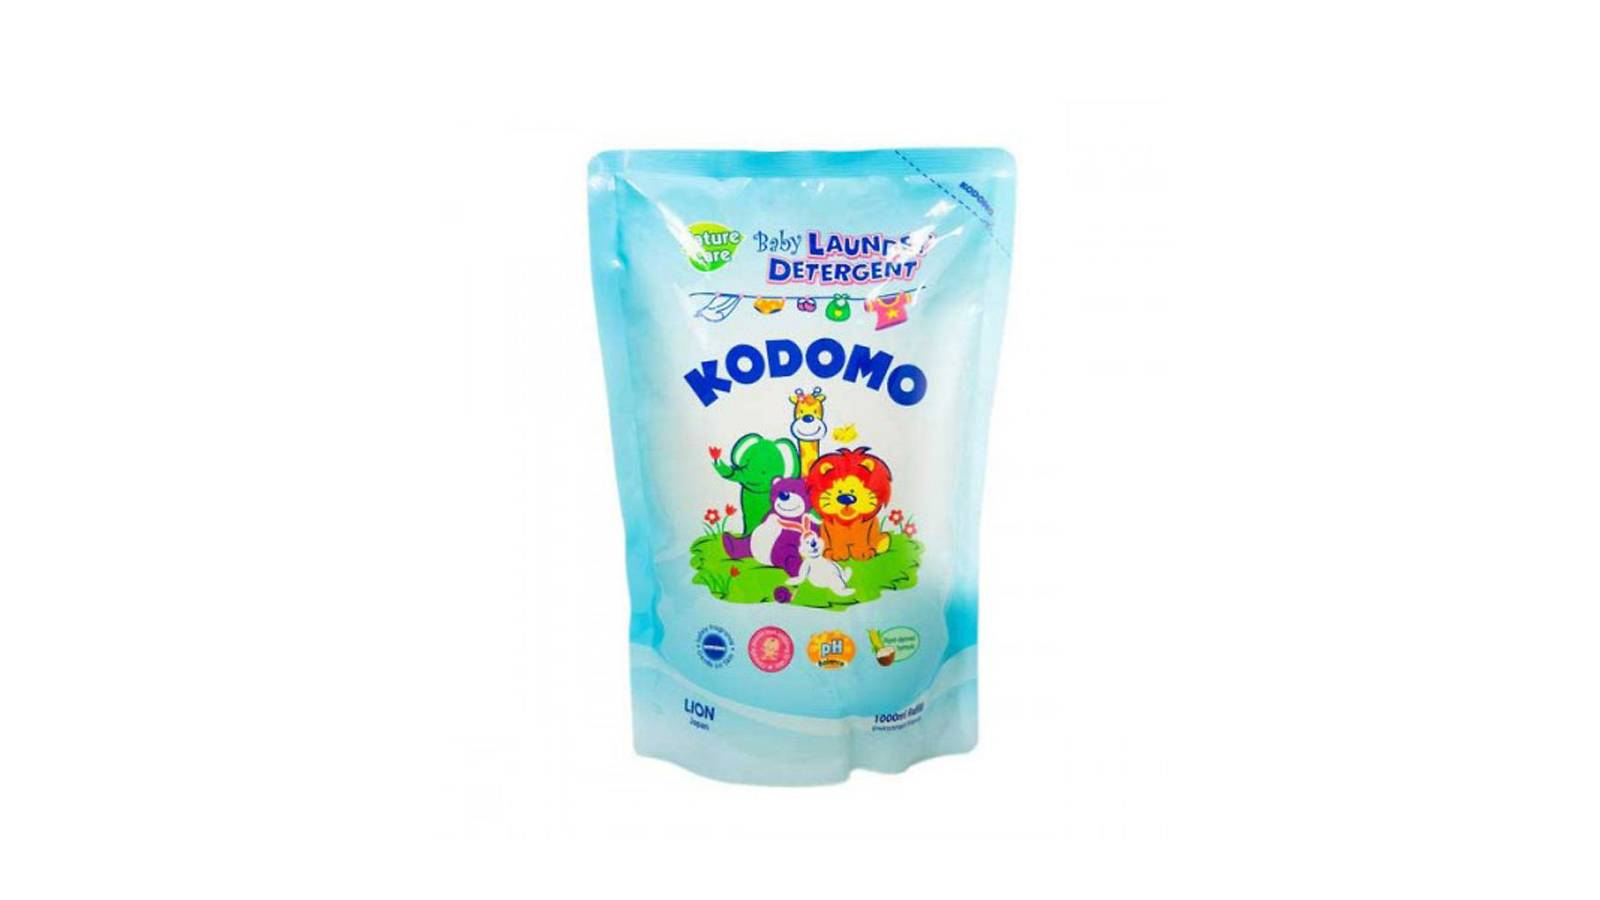 Babies-BUYER'S-GUIDE-7-best-laundry-detergents-for-baby-KODOMONatureCare